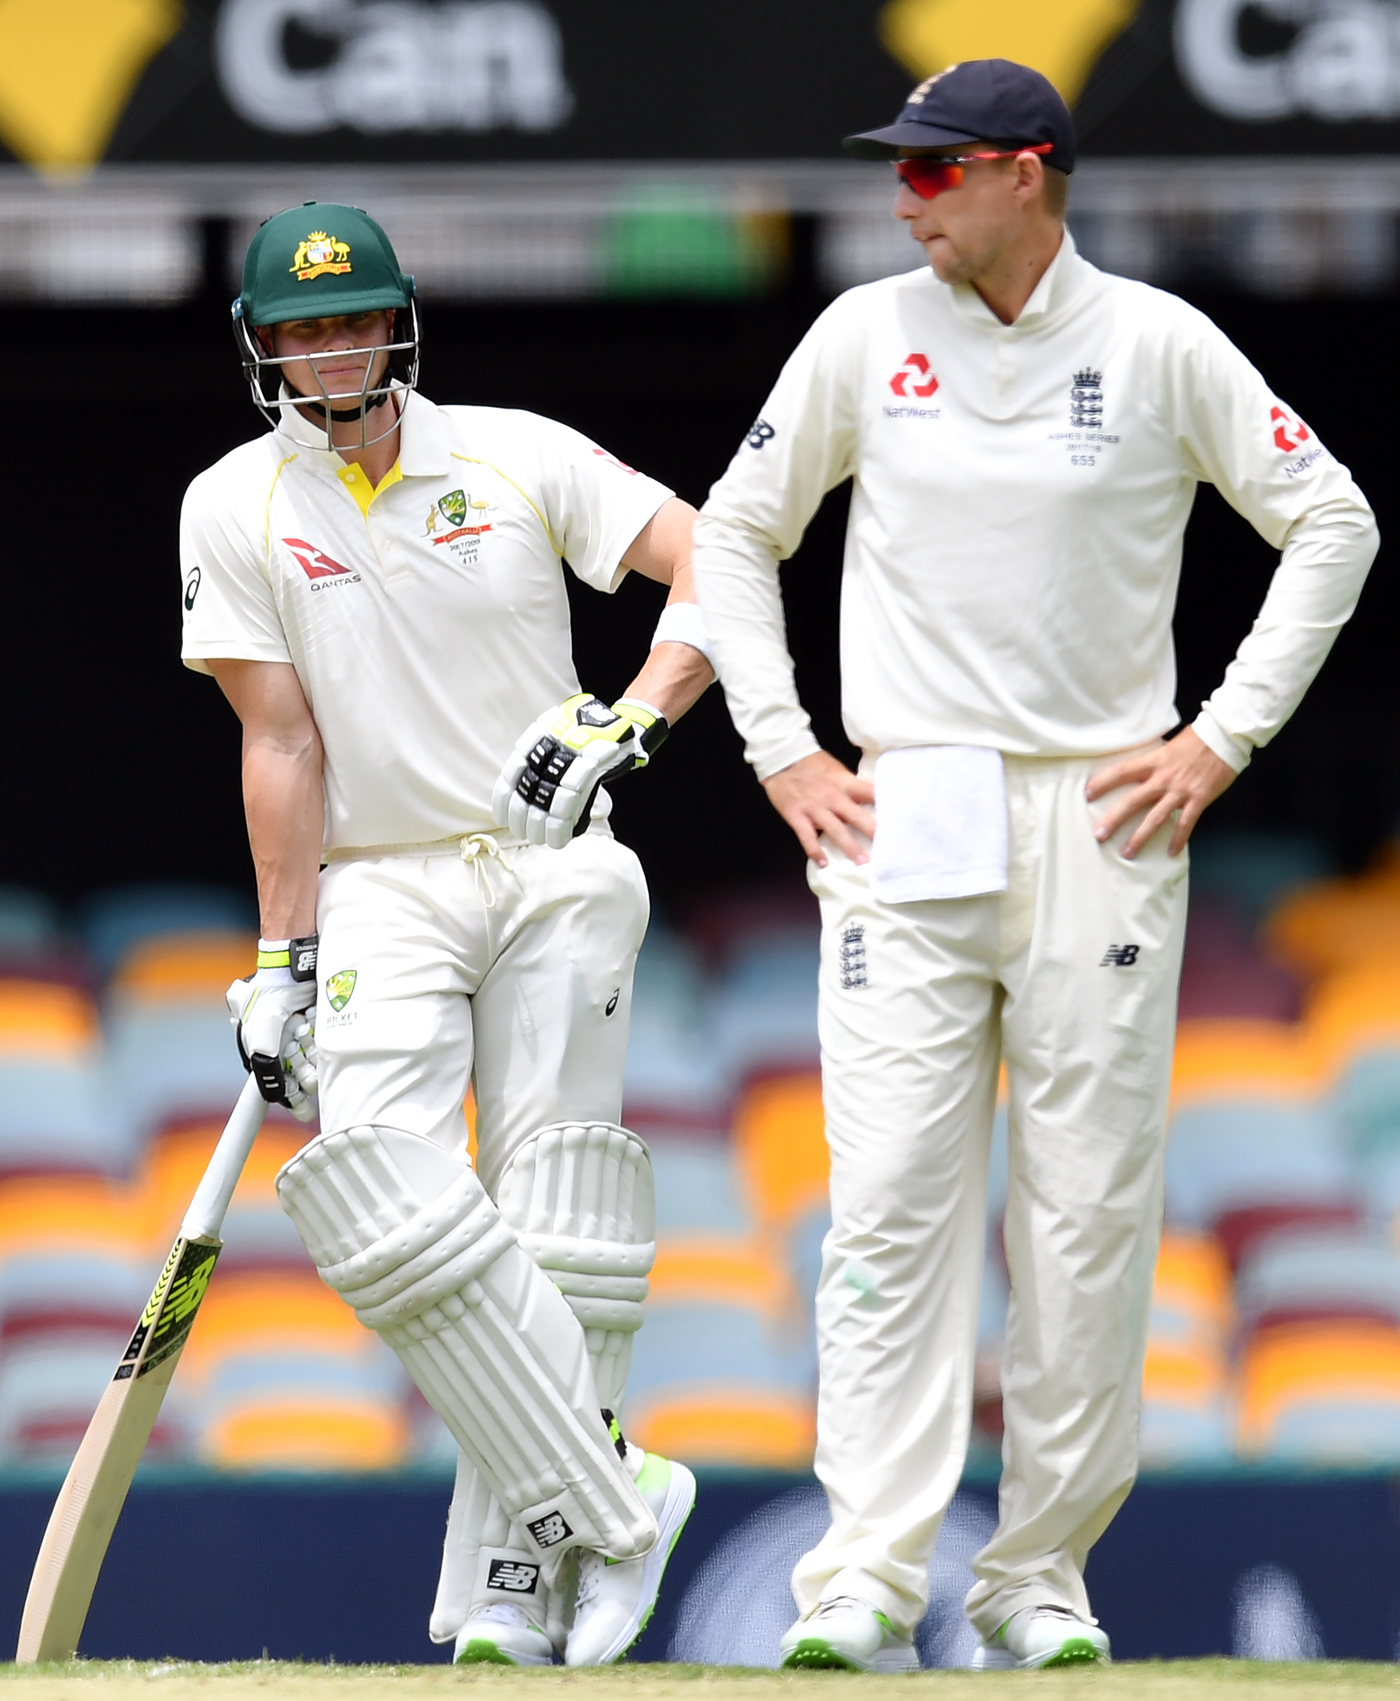 Ashes 2017/ 18: I Wouldn't Play Jake Ball In The Next Test, Says Kevin Pietersen As He Bats For Uncapped Mason Crane's Inclusion 3